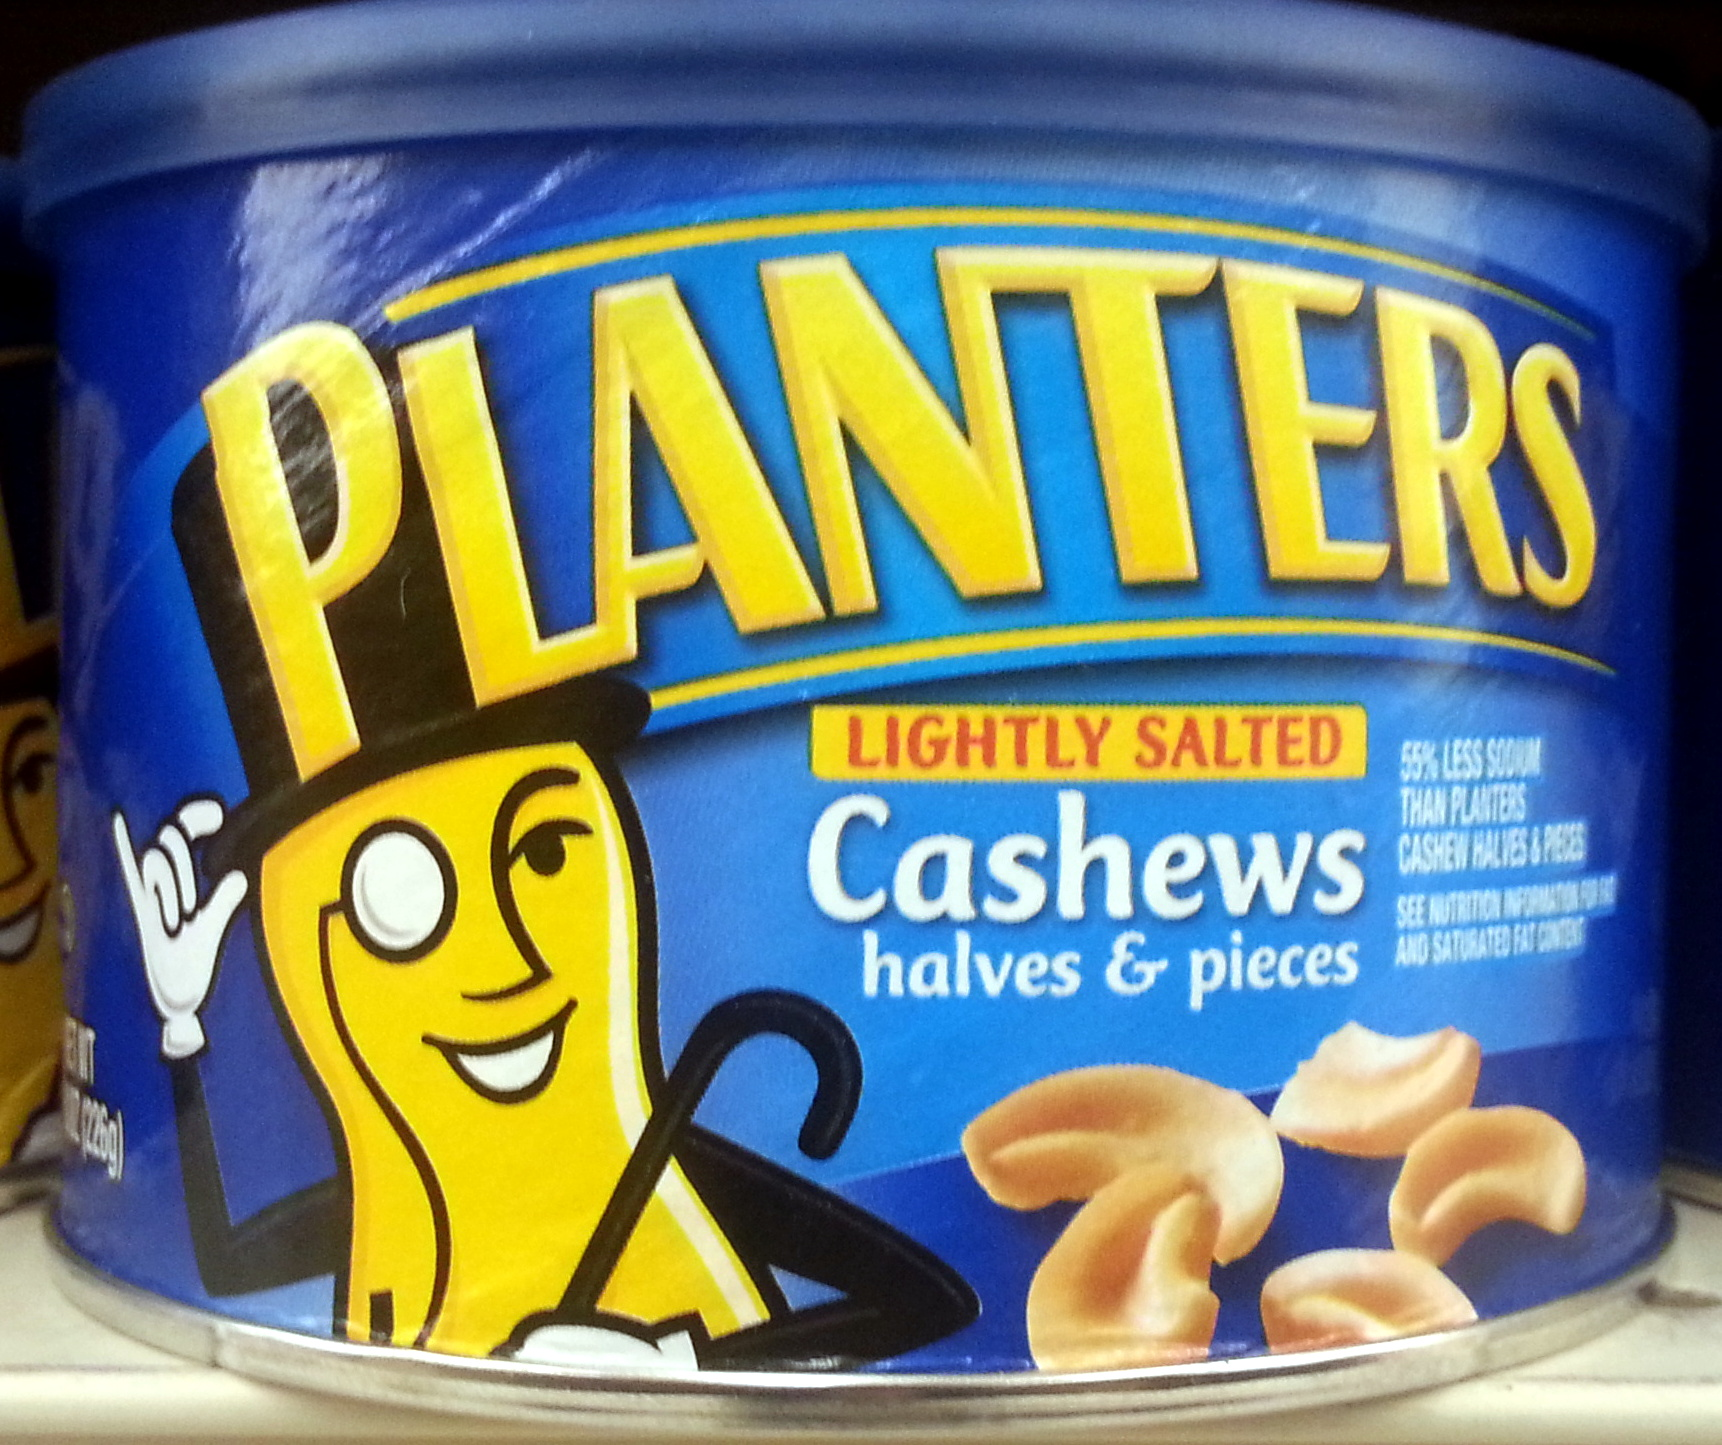 Planters, lightly salted cashews halves & pieces, lightly salted, lightly salted - Produit - en